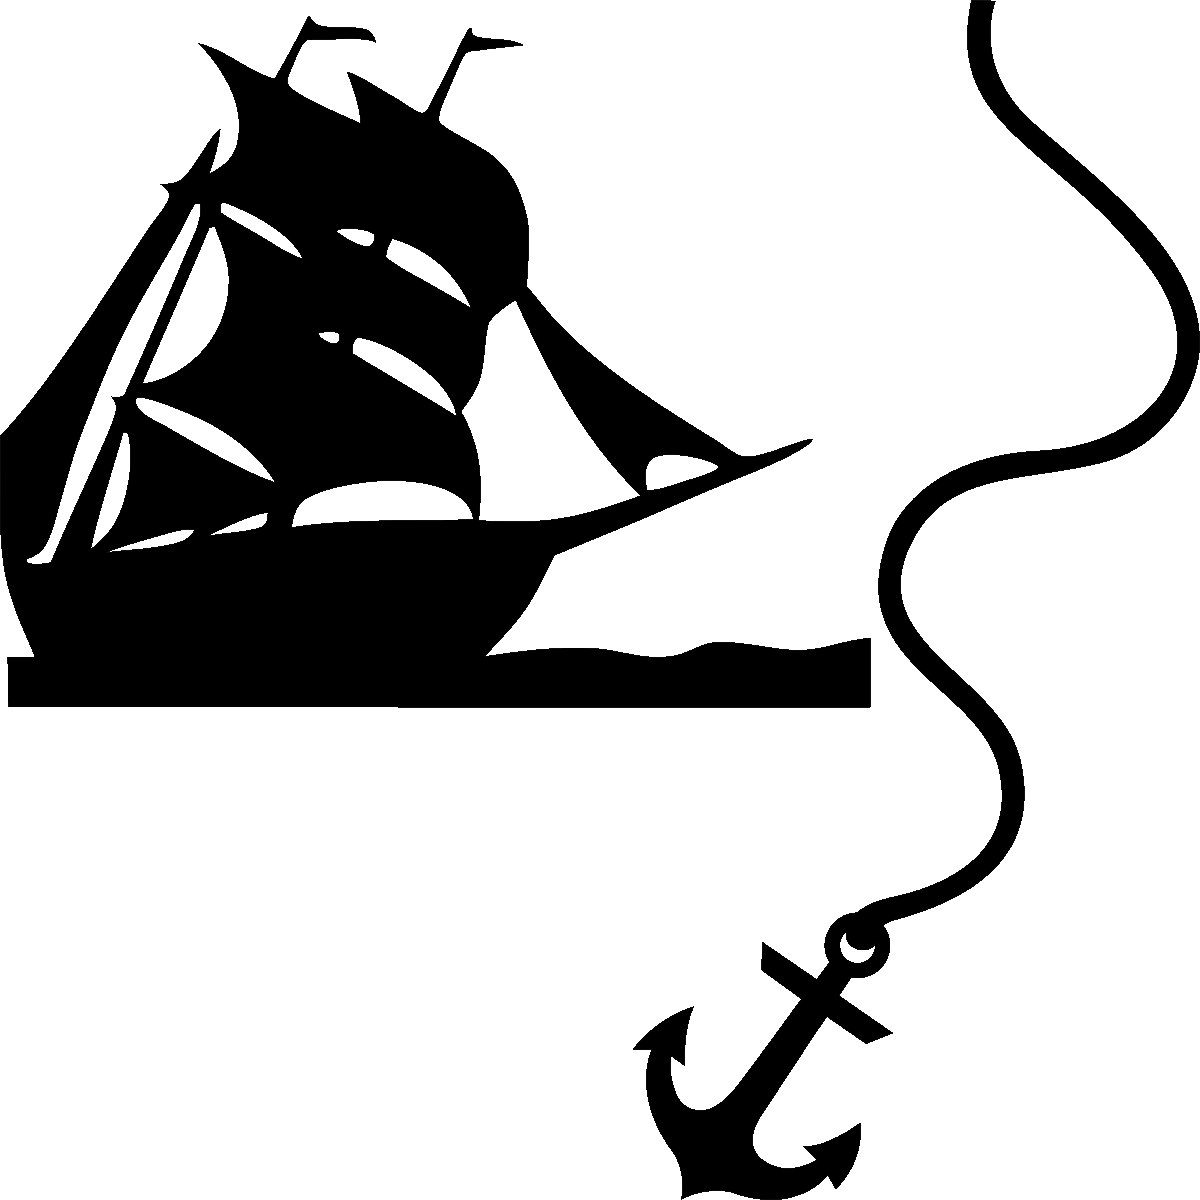 Wc Wall Decals Wall Decal Boat Anchor Ambiance Sticker Com